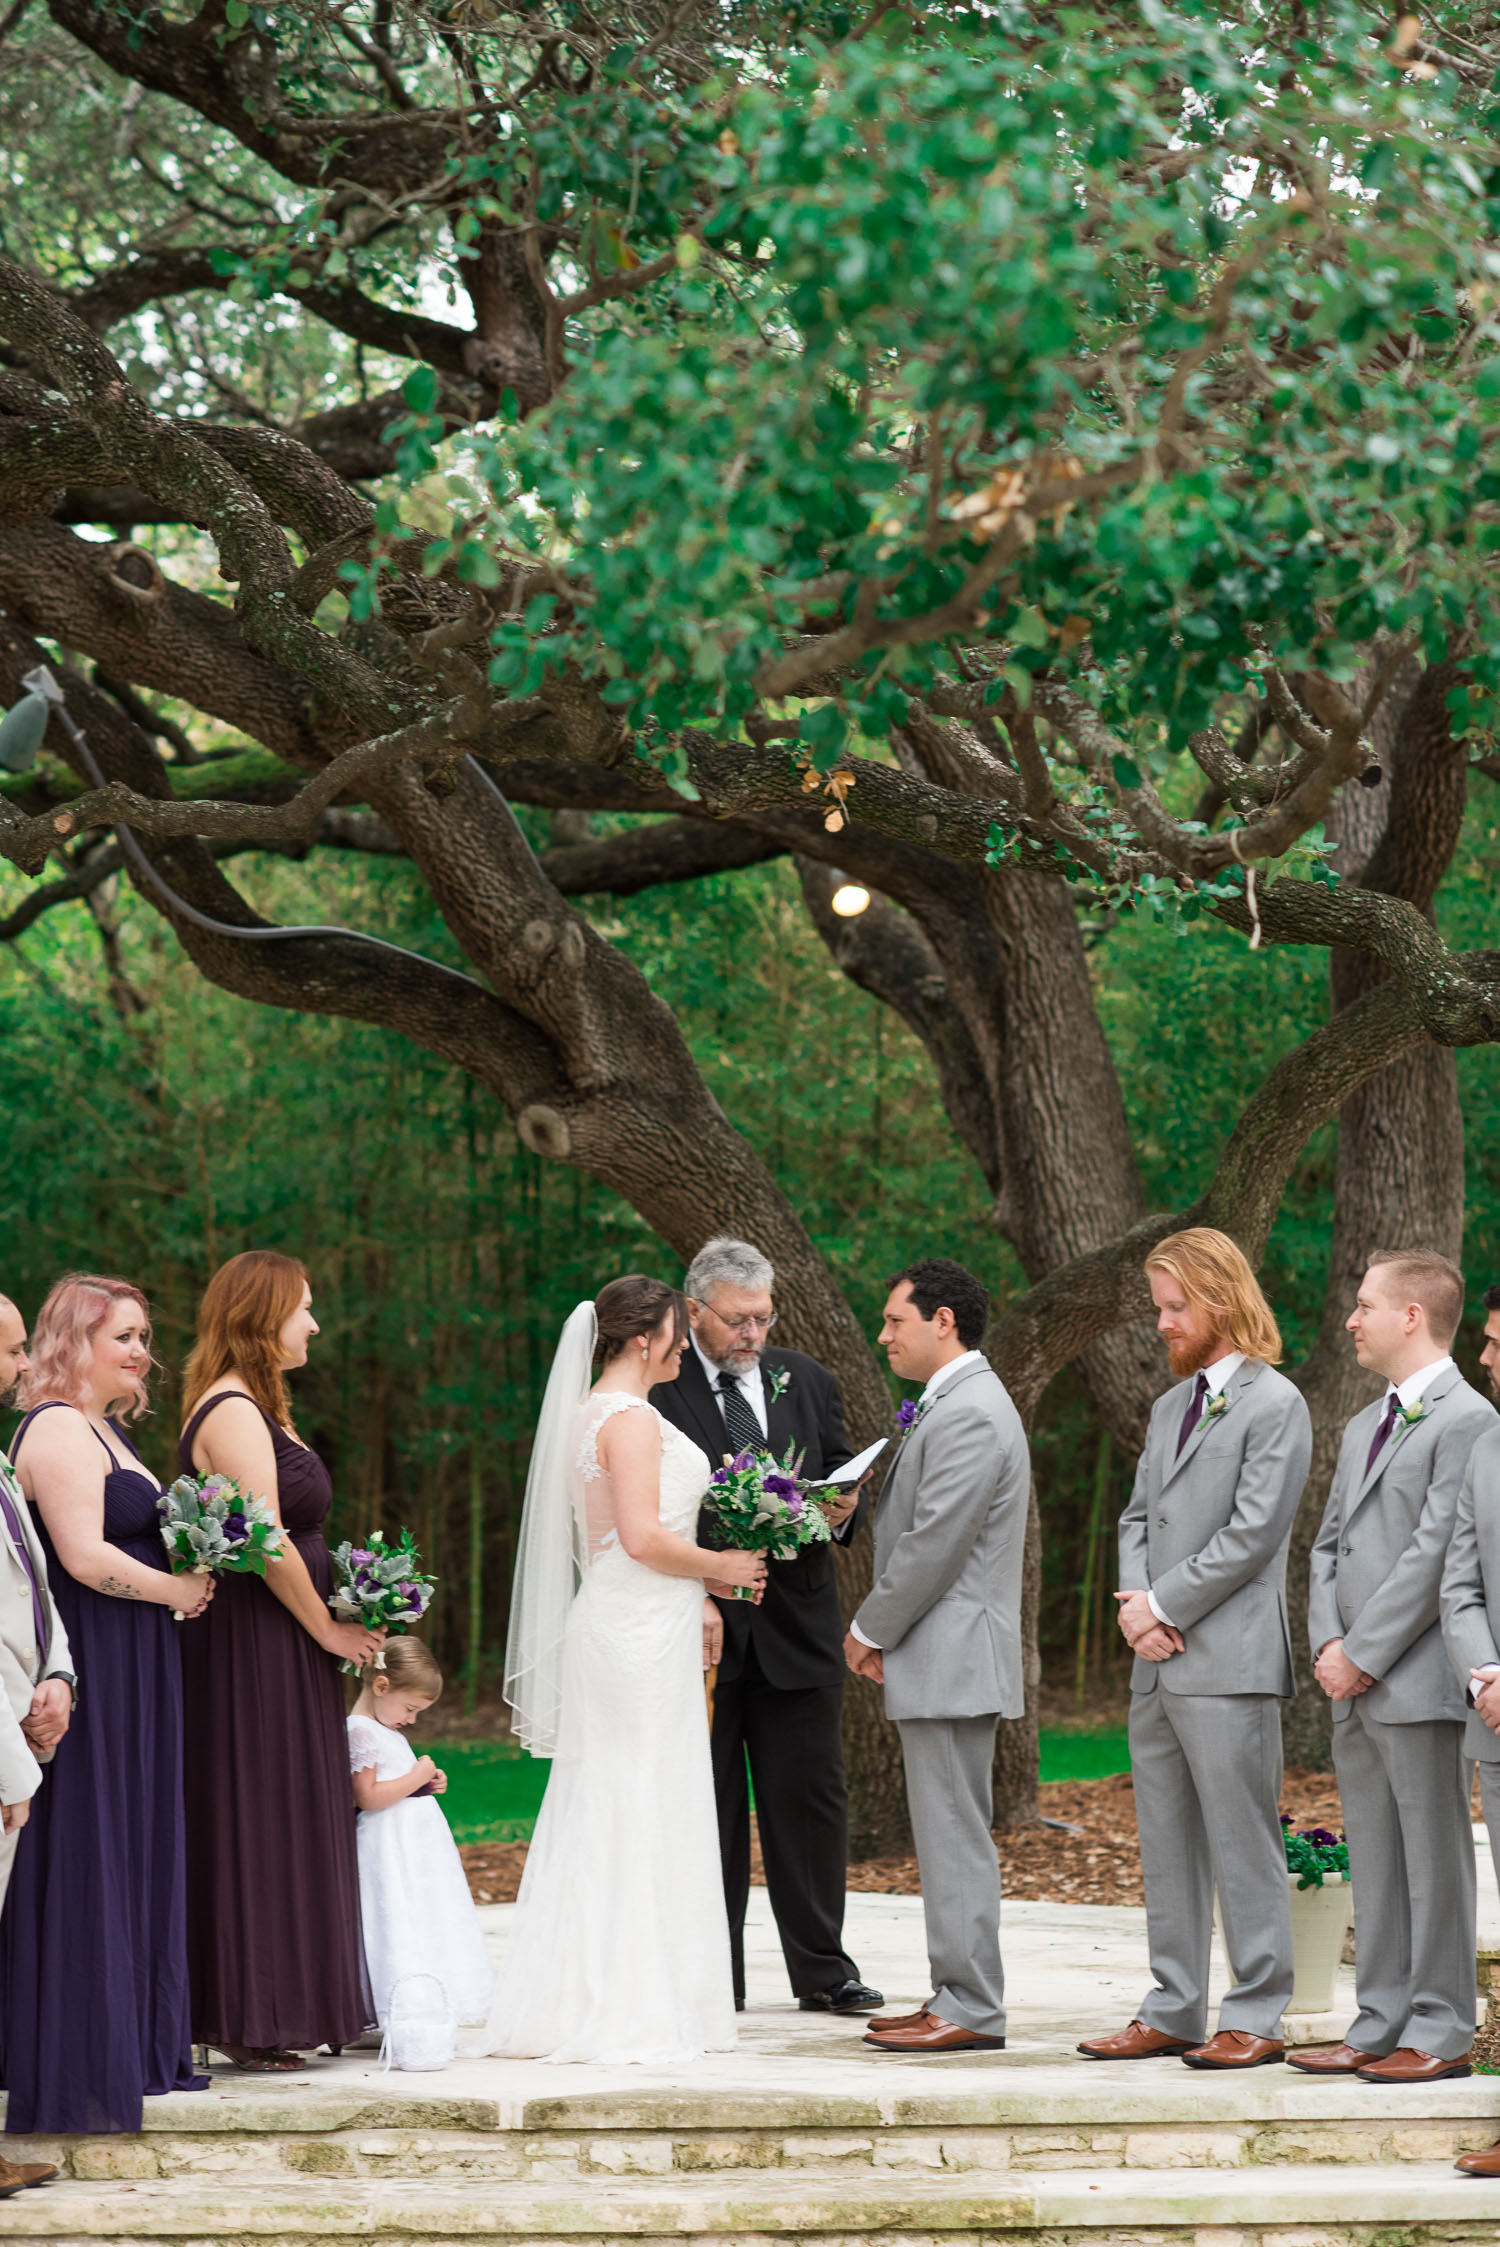 Alex and Austin Wedding Photography at Mercury Hall in Texas-85.jpg